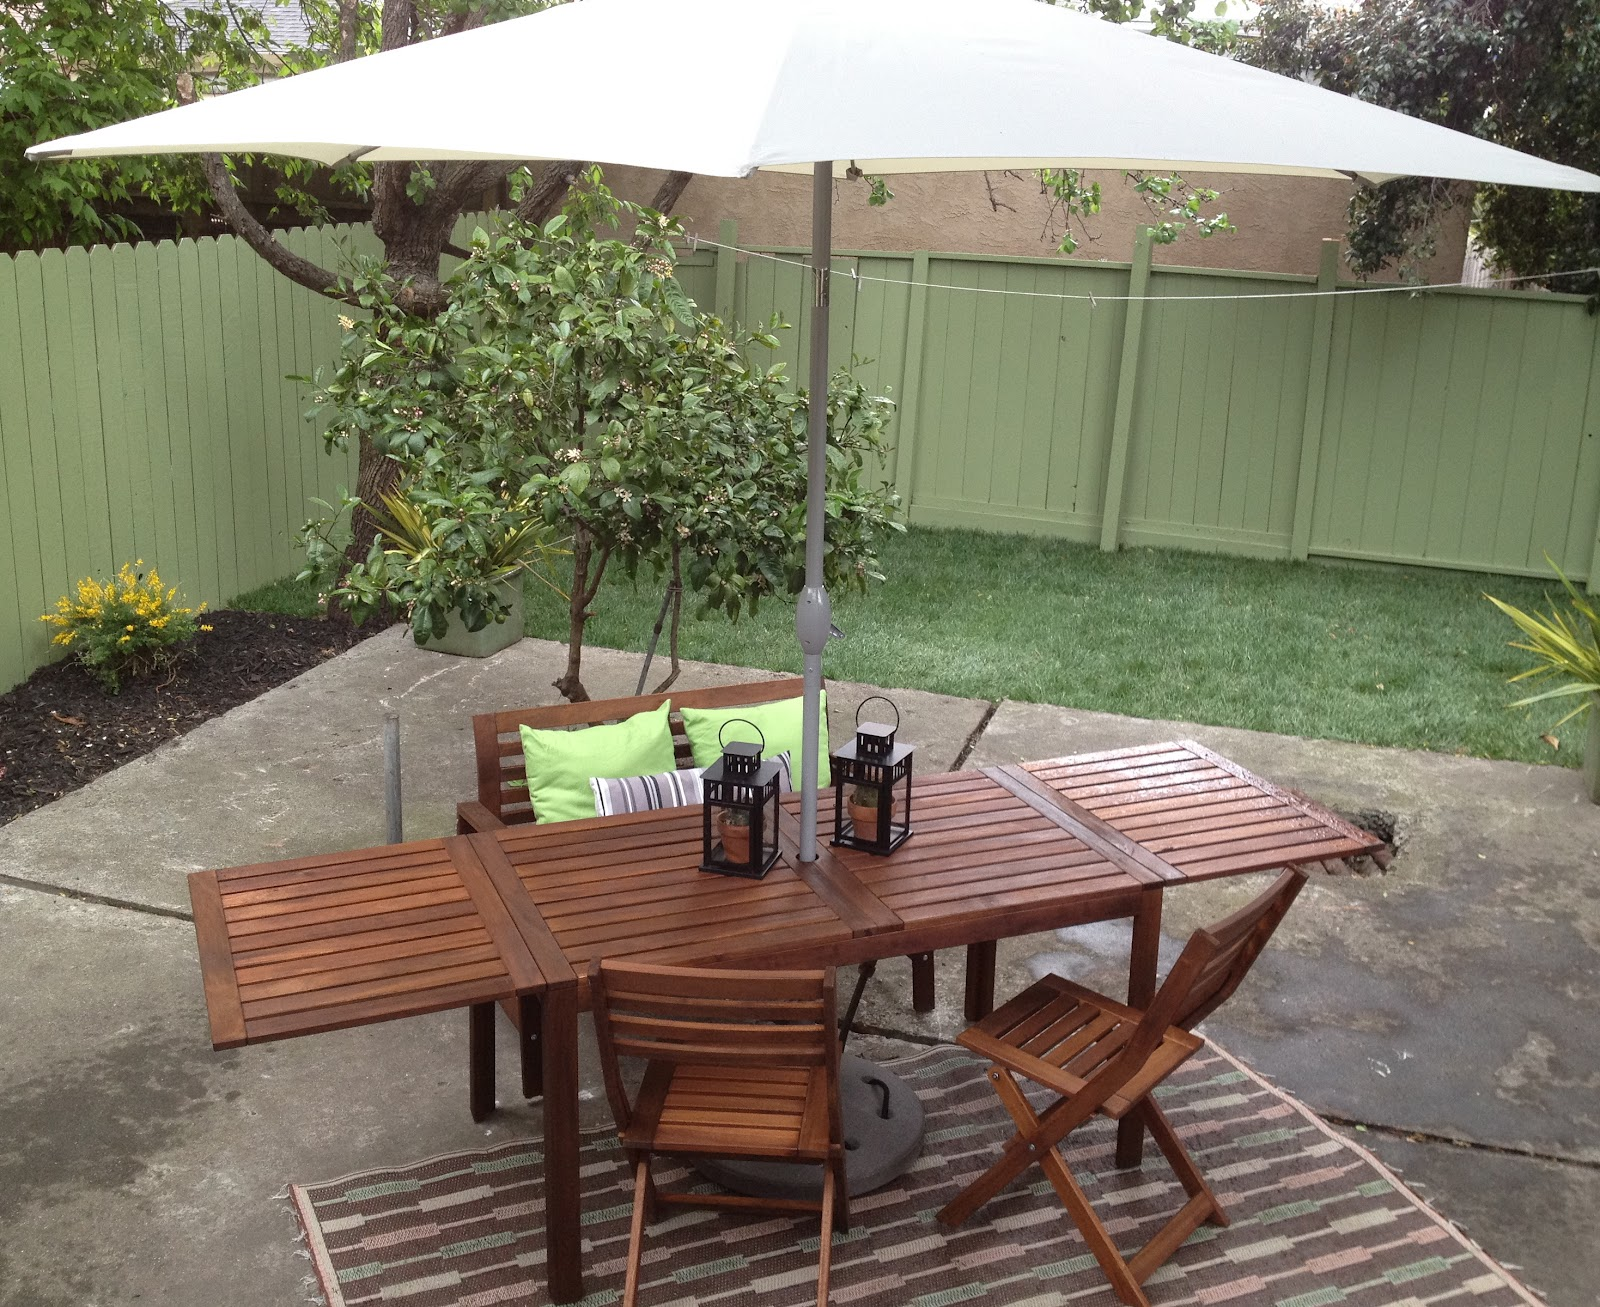 ikea outdoor patio furniture. conclusion ikea outdoor patio furniture a